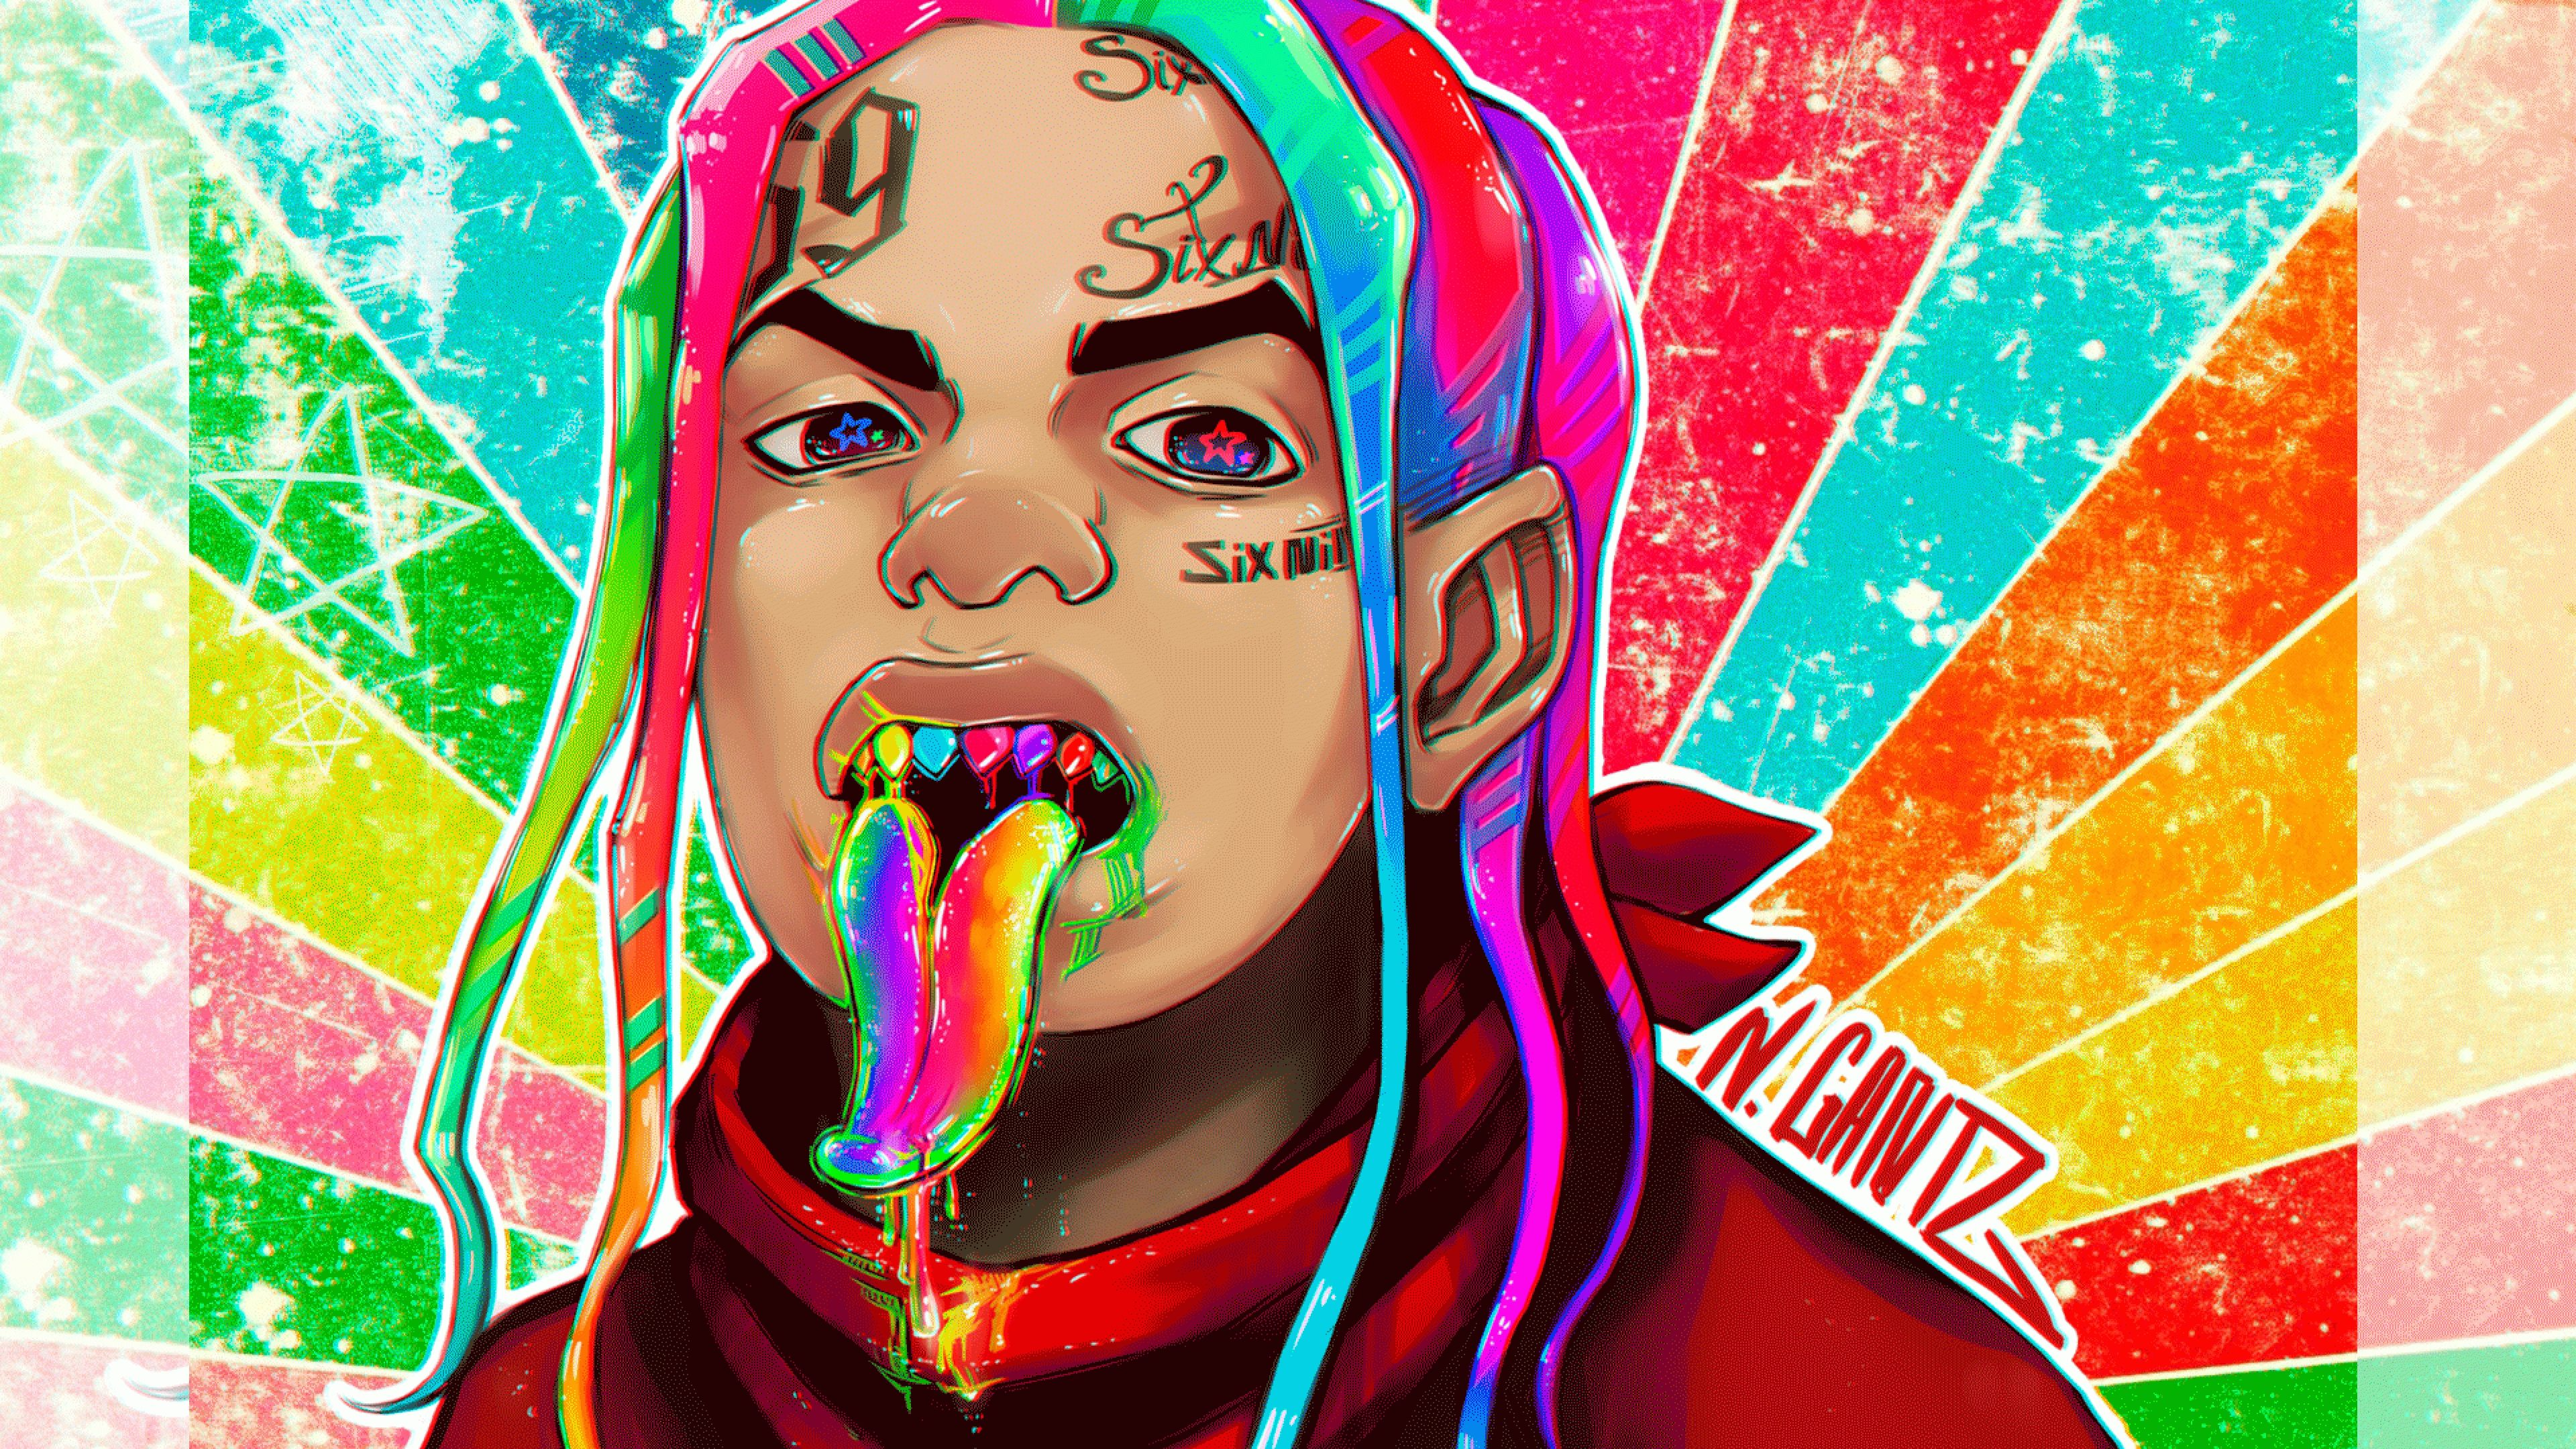 3840x2160 Pin by Wallpaperplex on 6ix9ine Wallpapers in 2019 | Wallpaper, Android